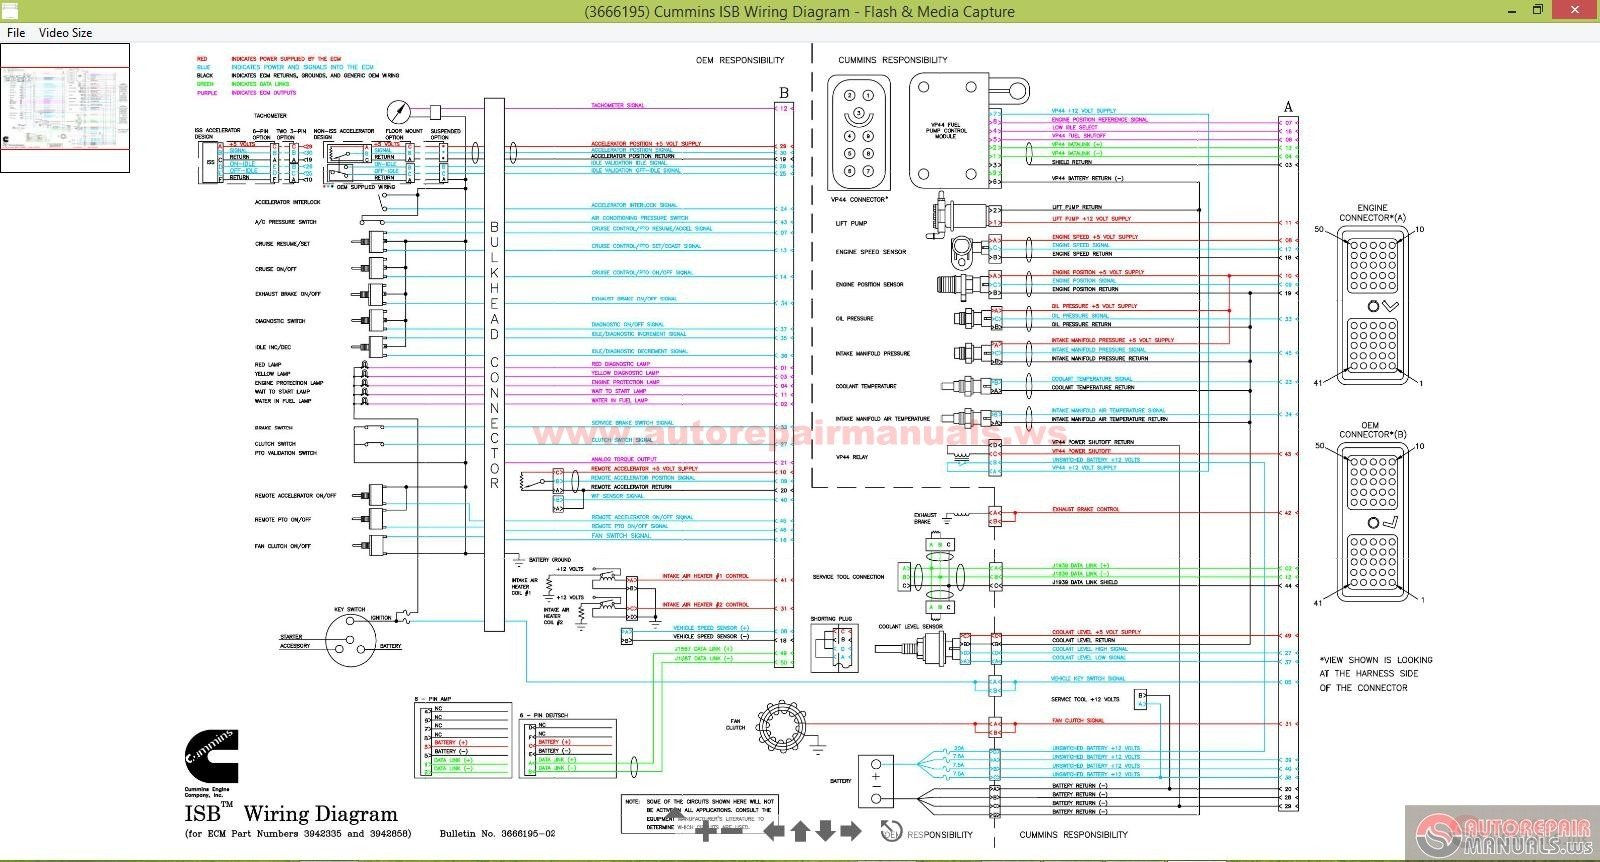 Peterbilt Engine Wiring Diagram on peterbilt relay diagram, peterbilt starter wiring, peterbilt dash warning lights, peterbilt radio wiring harness, peterbilt circuit breaker, peterbilt steering diagram, peterbilt spec sheet, peterbilt brake diagram, peterbilt tachometer wiring, peterbilt headlight conversion, peterbilt torque specs, peterbilt front axle diagram, peterbilt headlight wiring, peterbilt switch, peterbilt ac diagram, peterbilt transmission diagram, peterbilt ignition wiring, peterbilt body diagram, peterbilt battery diagram, peterbilt fuse,